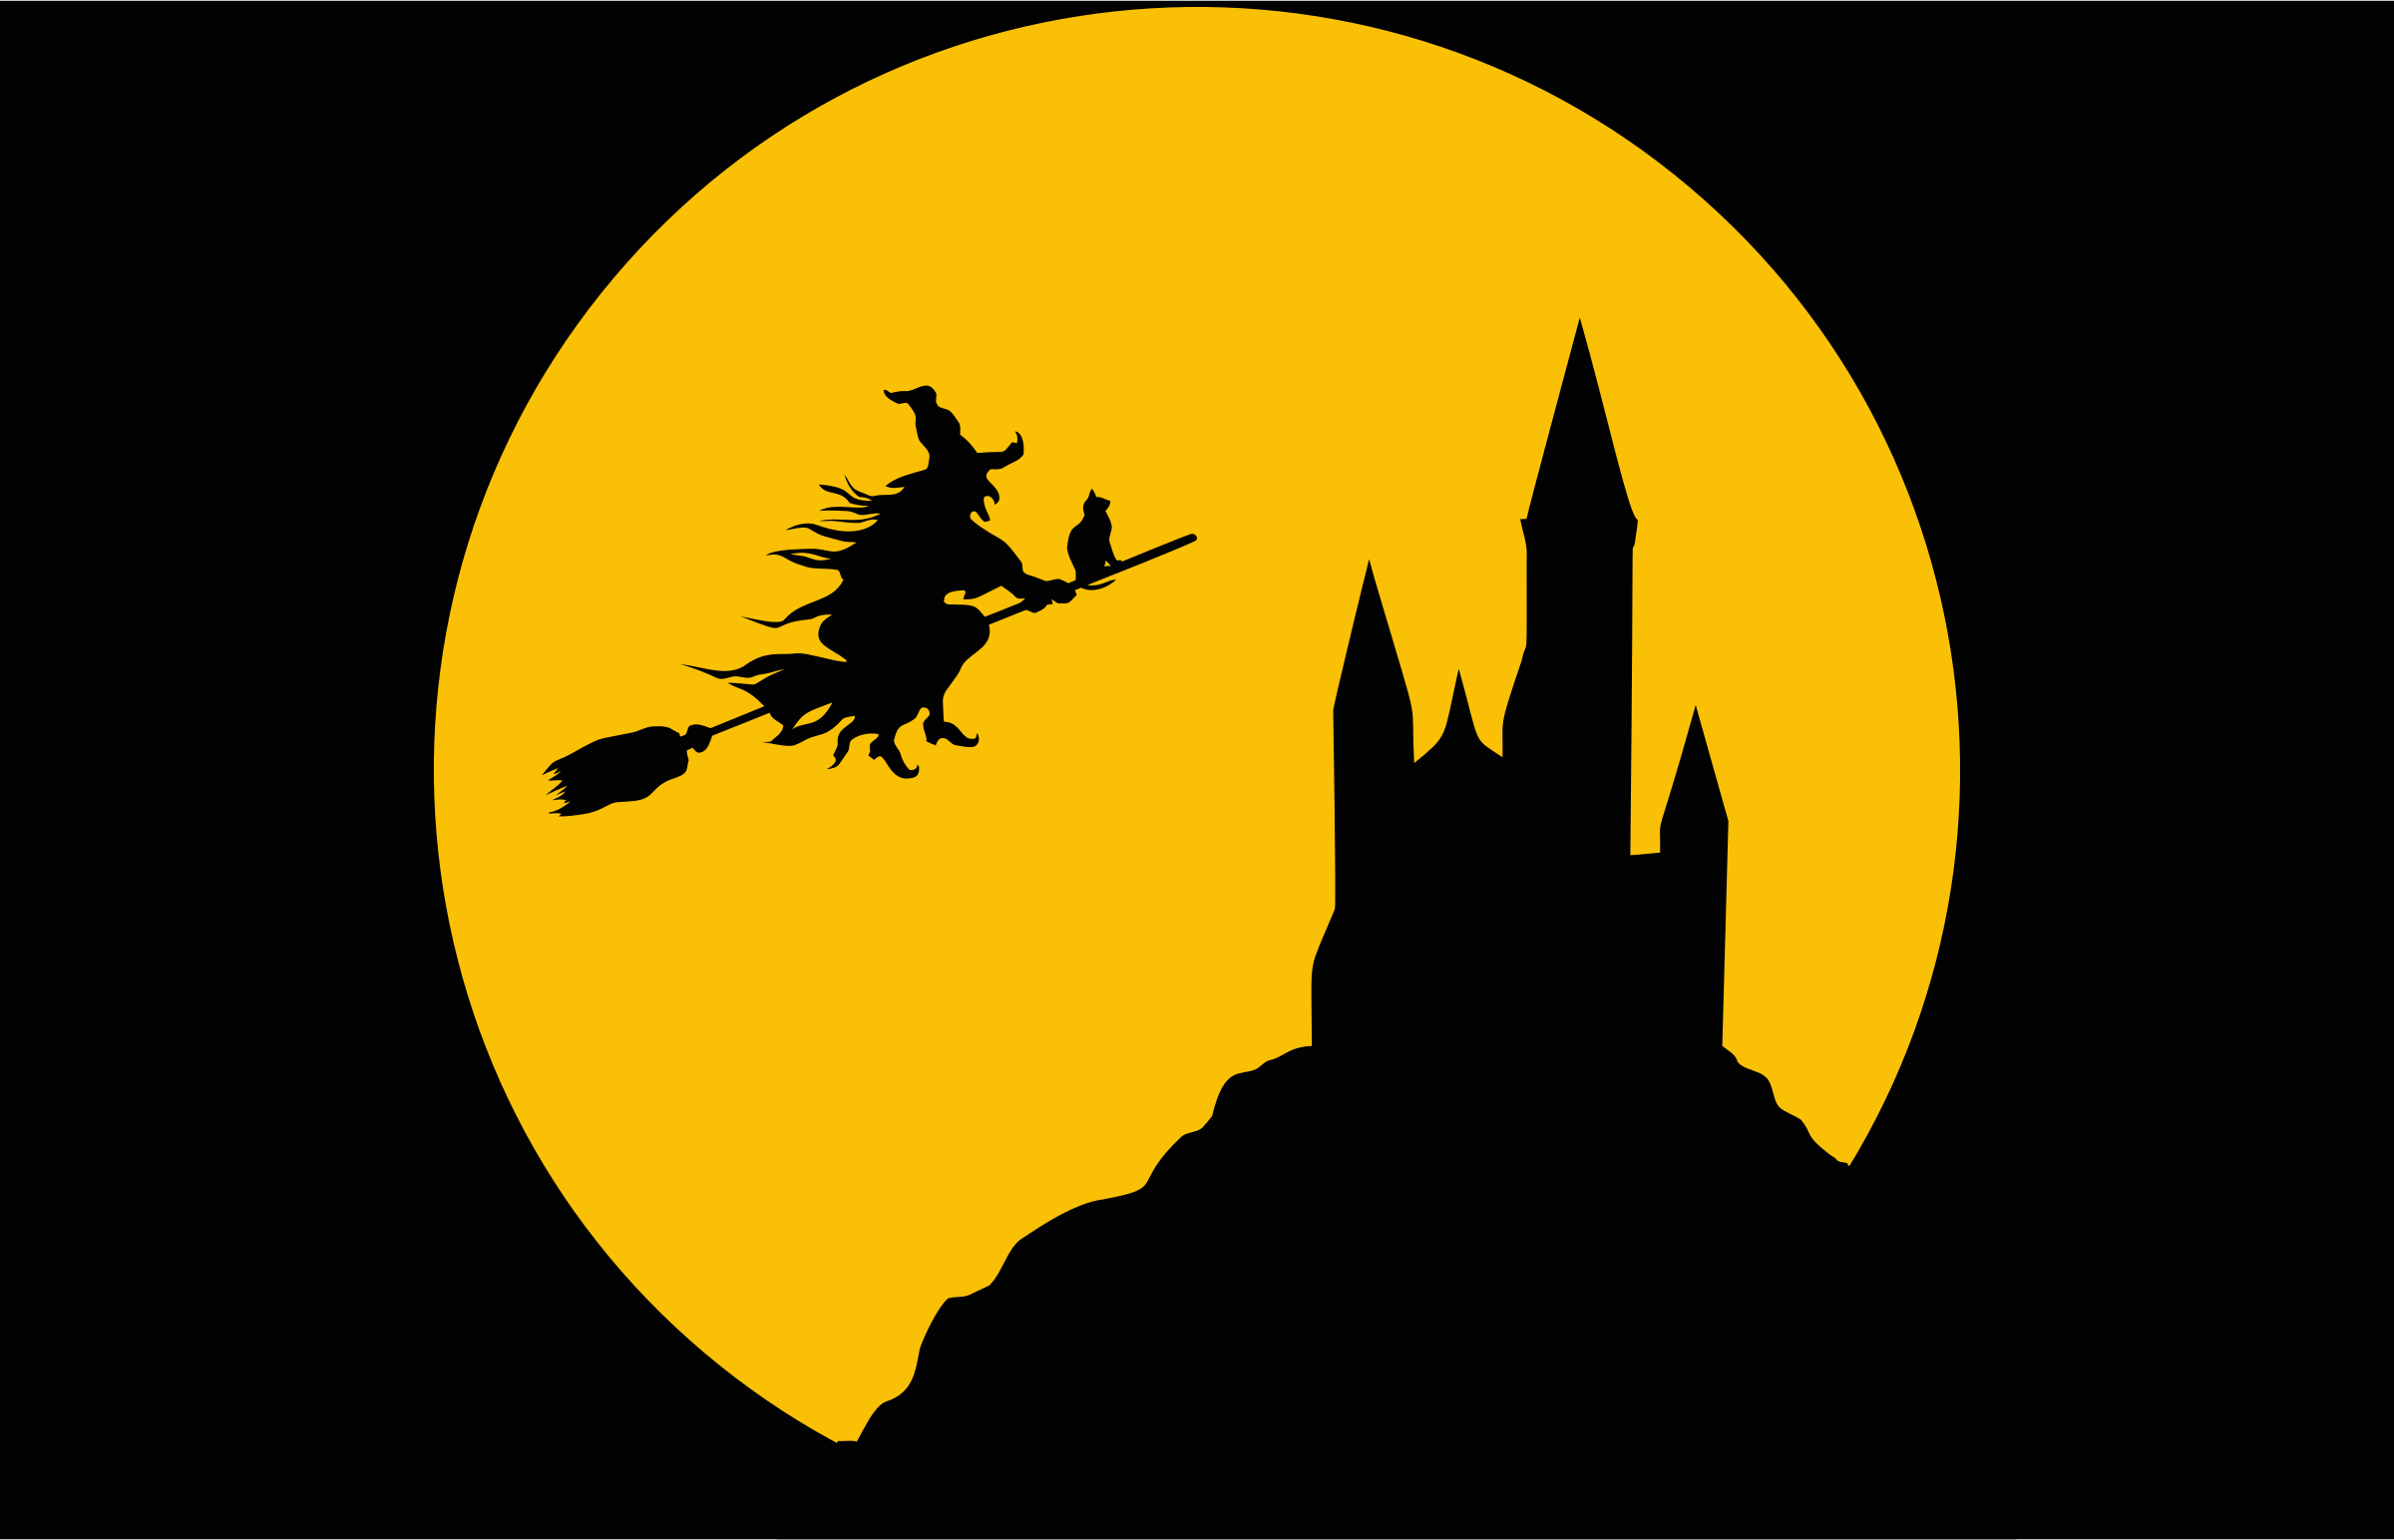 Witch Flying In Full Moon Silhouette by GDJ